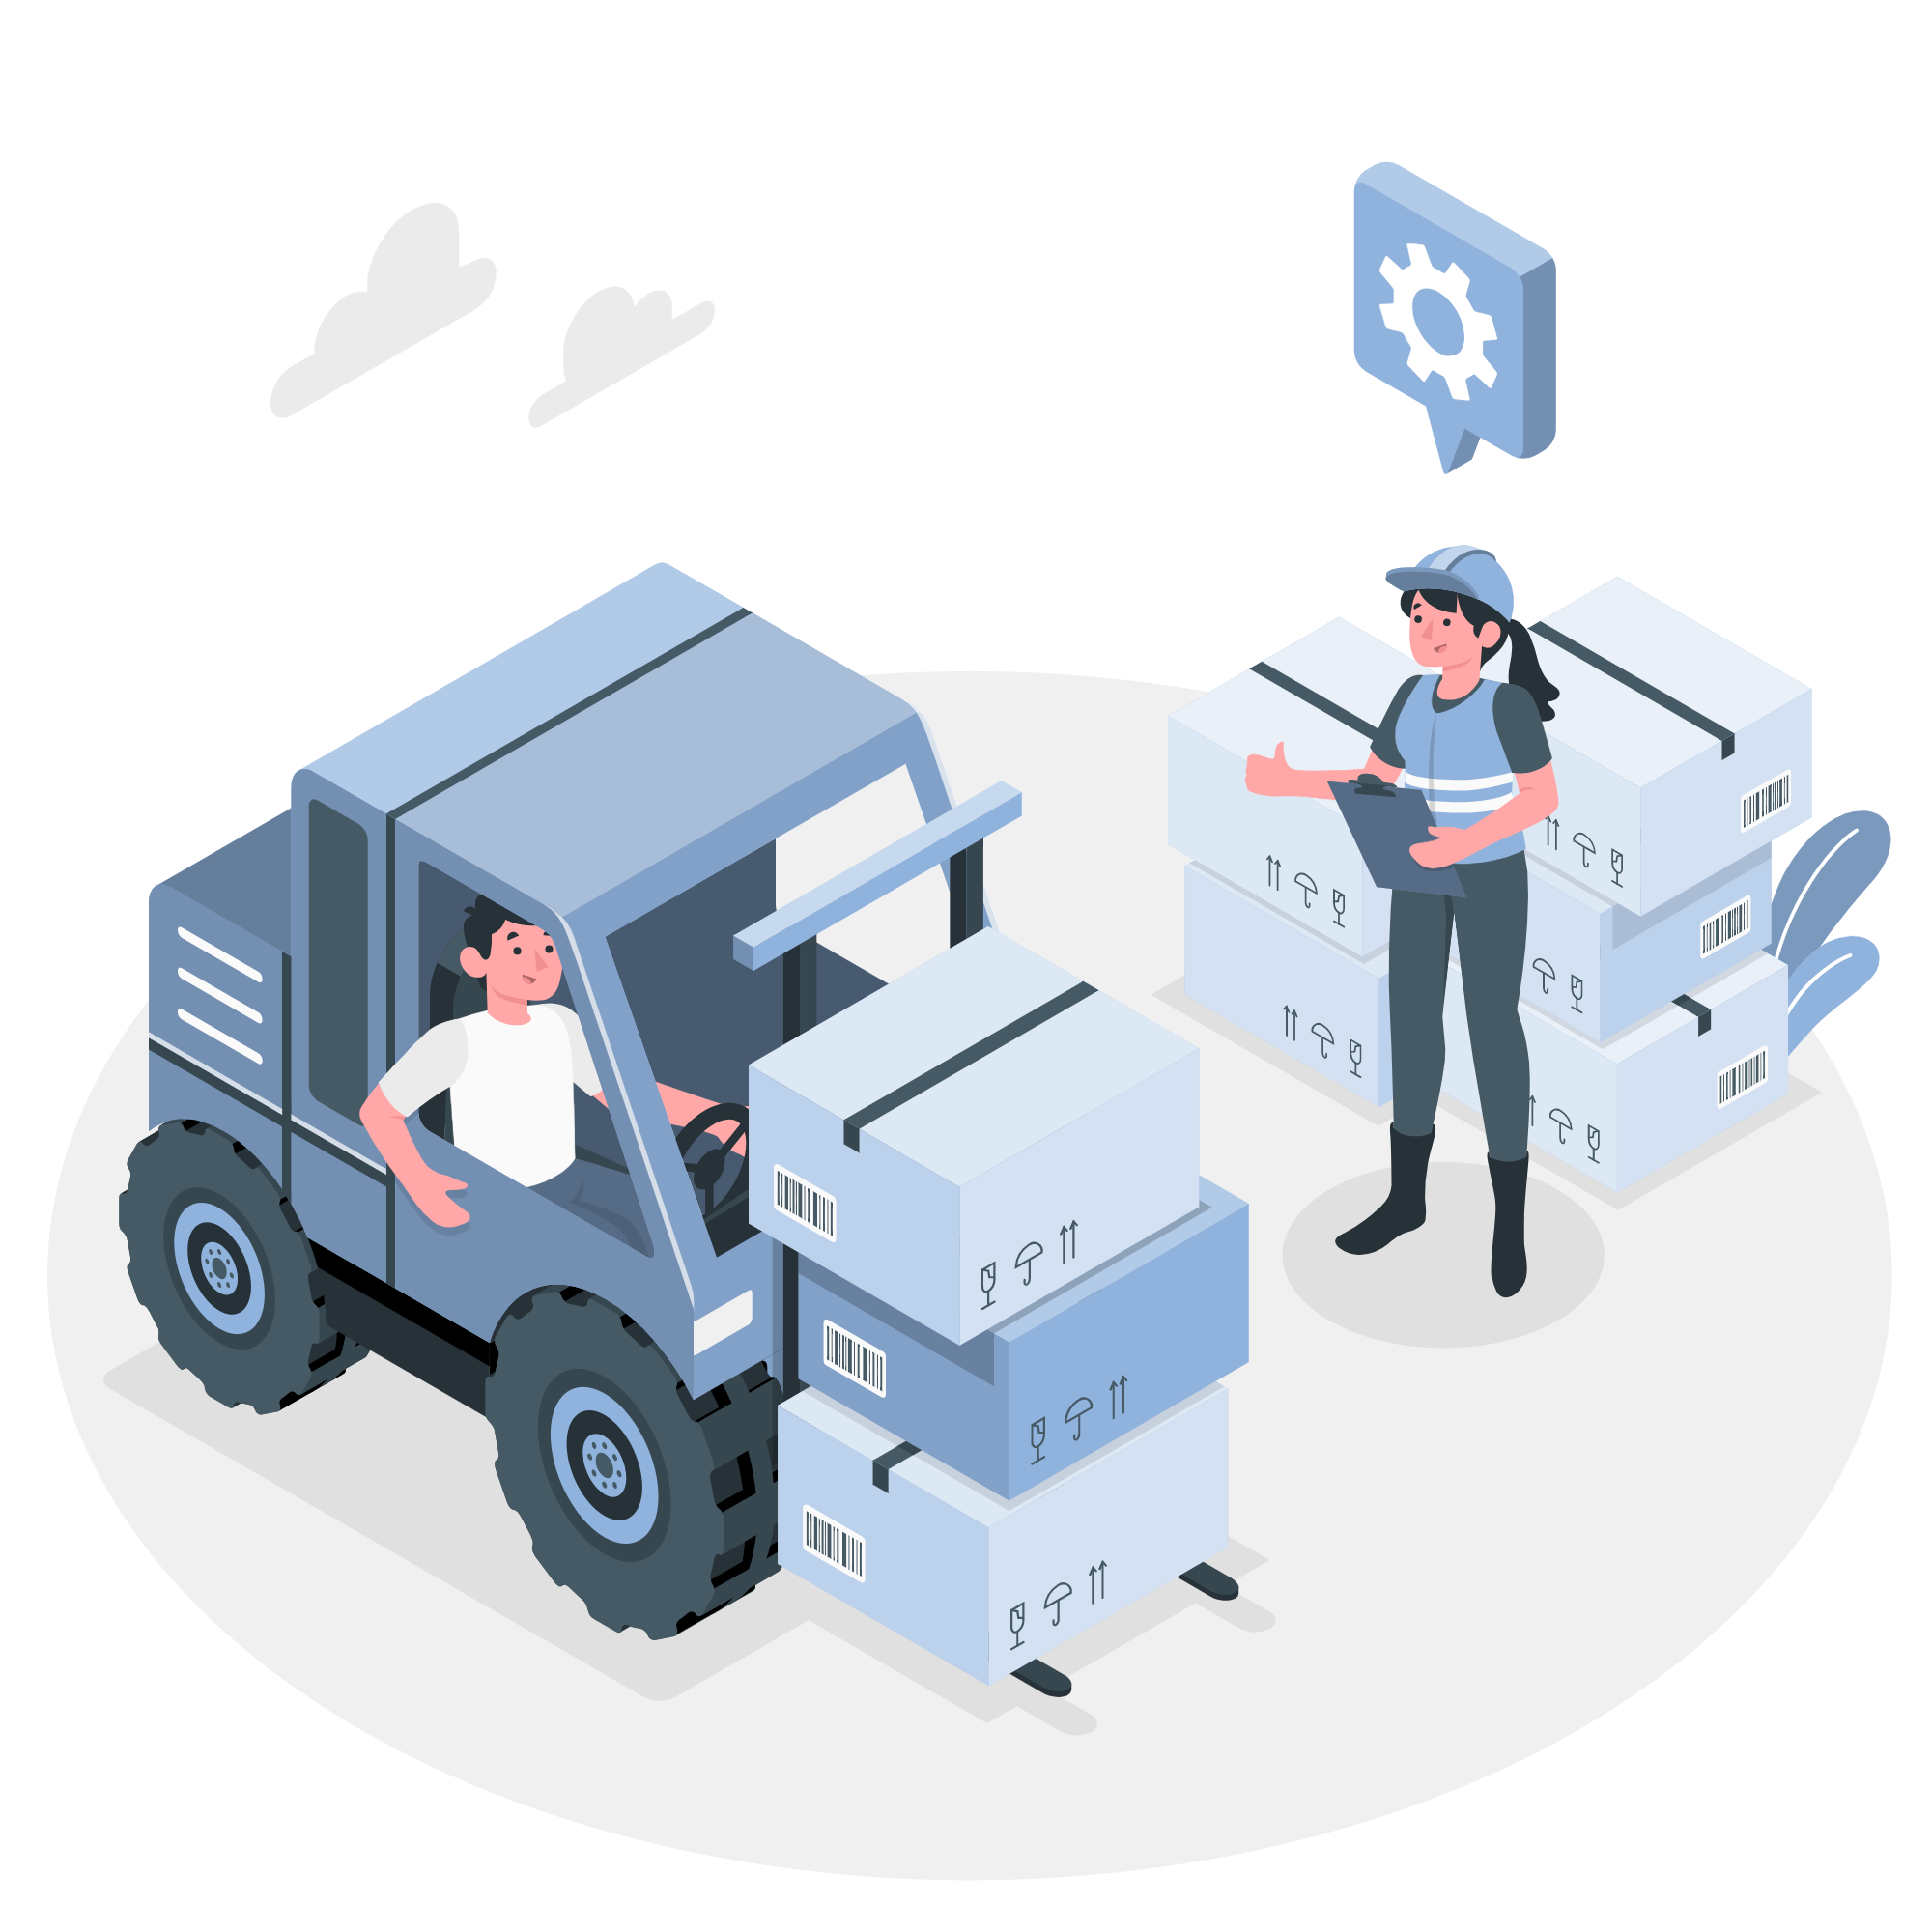 E-commerce logistics : The 9 elements to optimize your customer experience.